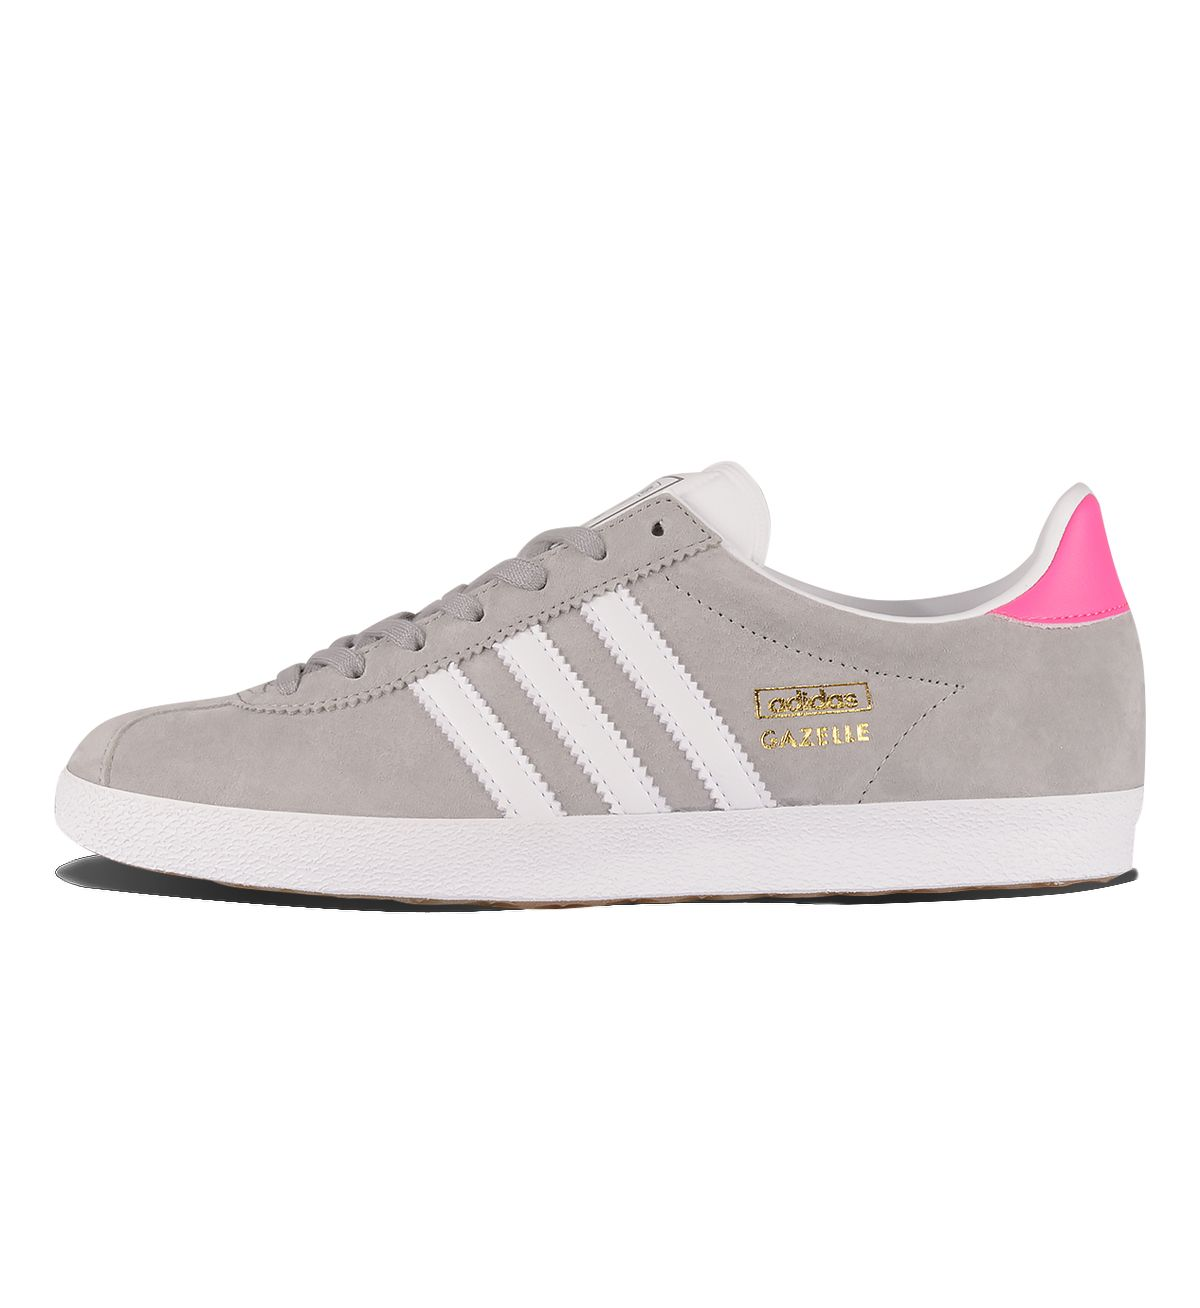 Adidas Originals Gazelle OG Solid Grey Feather White